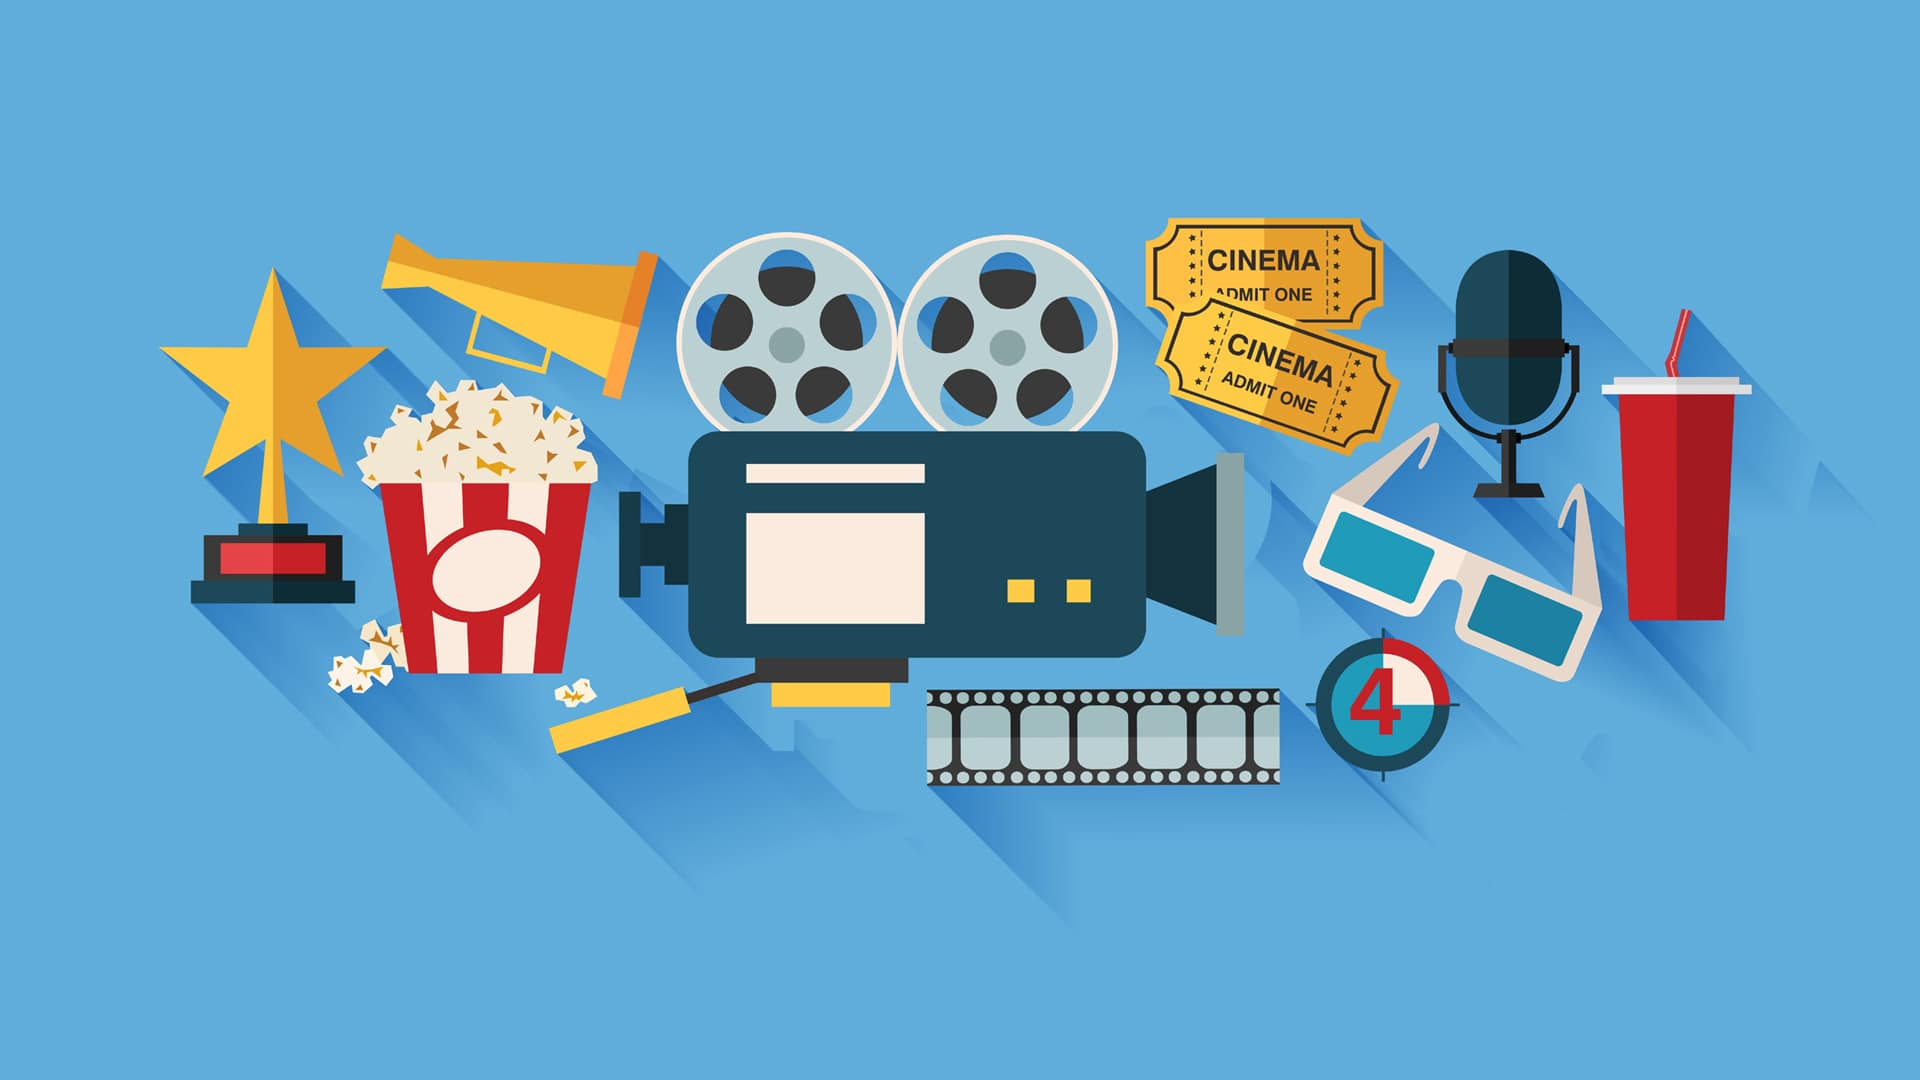 cartoon icons and symbols of entertainment services such as popcorn, movie tickets, 3d glasses, etc.